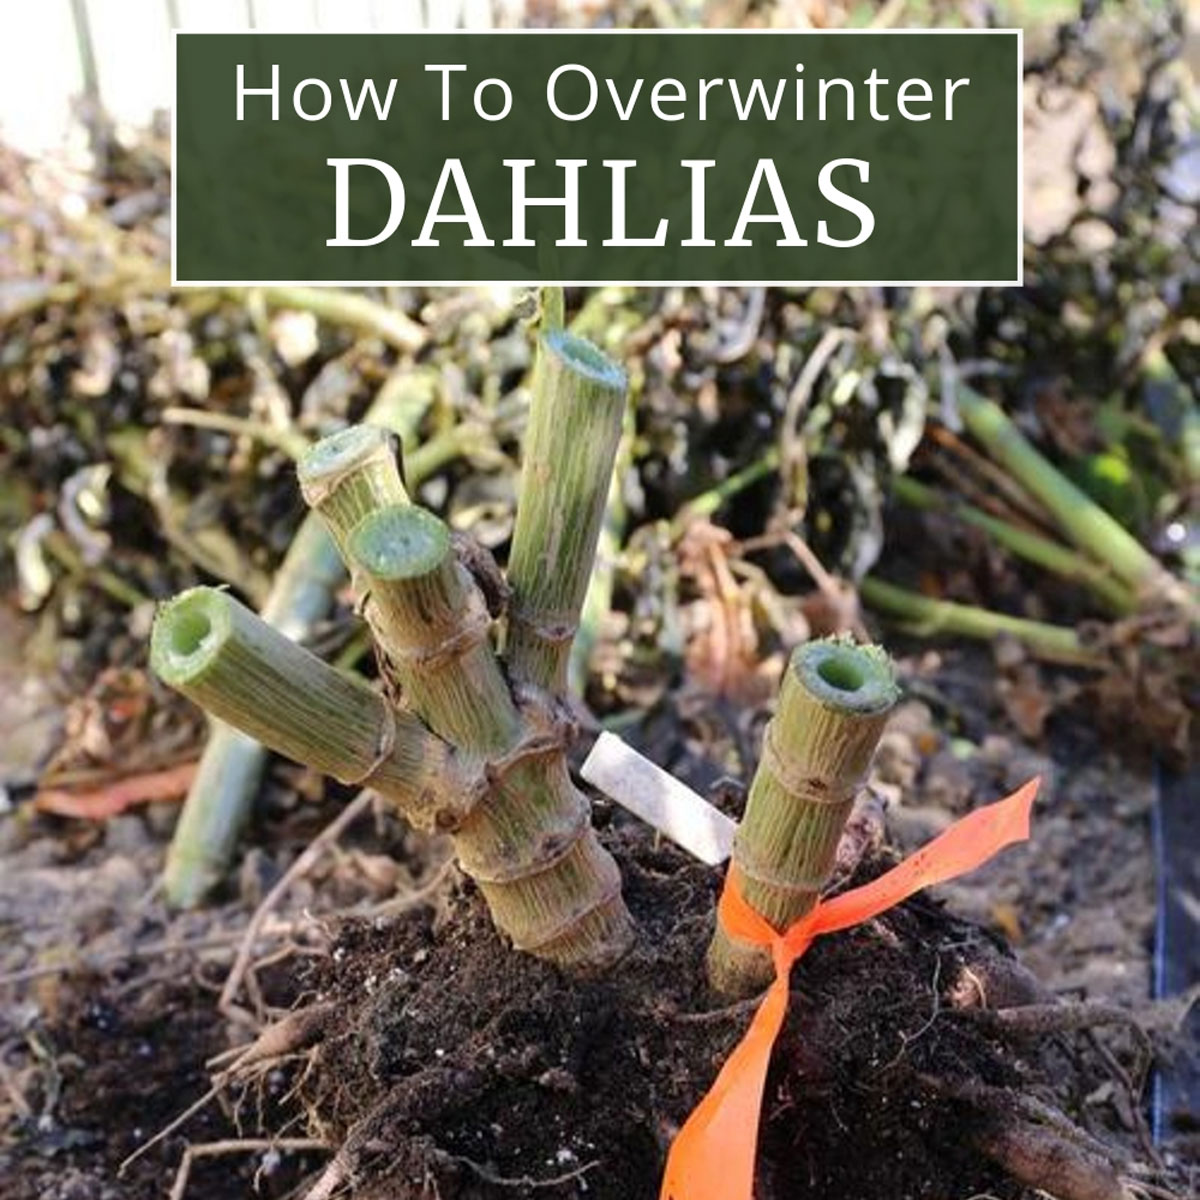 How-to-Overwinter-Dahlias-Longfield Gardens